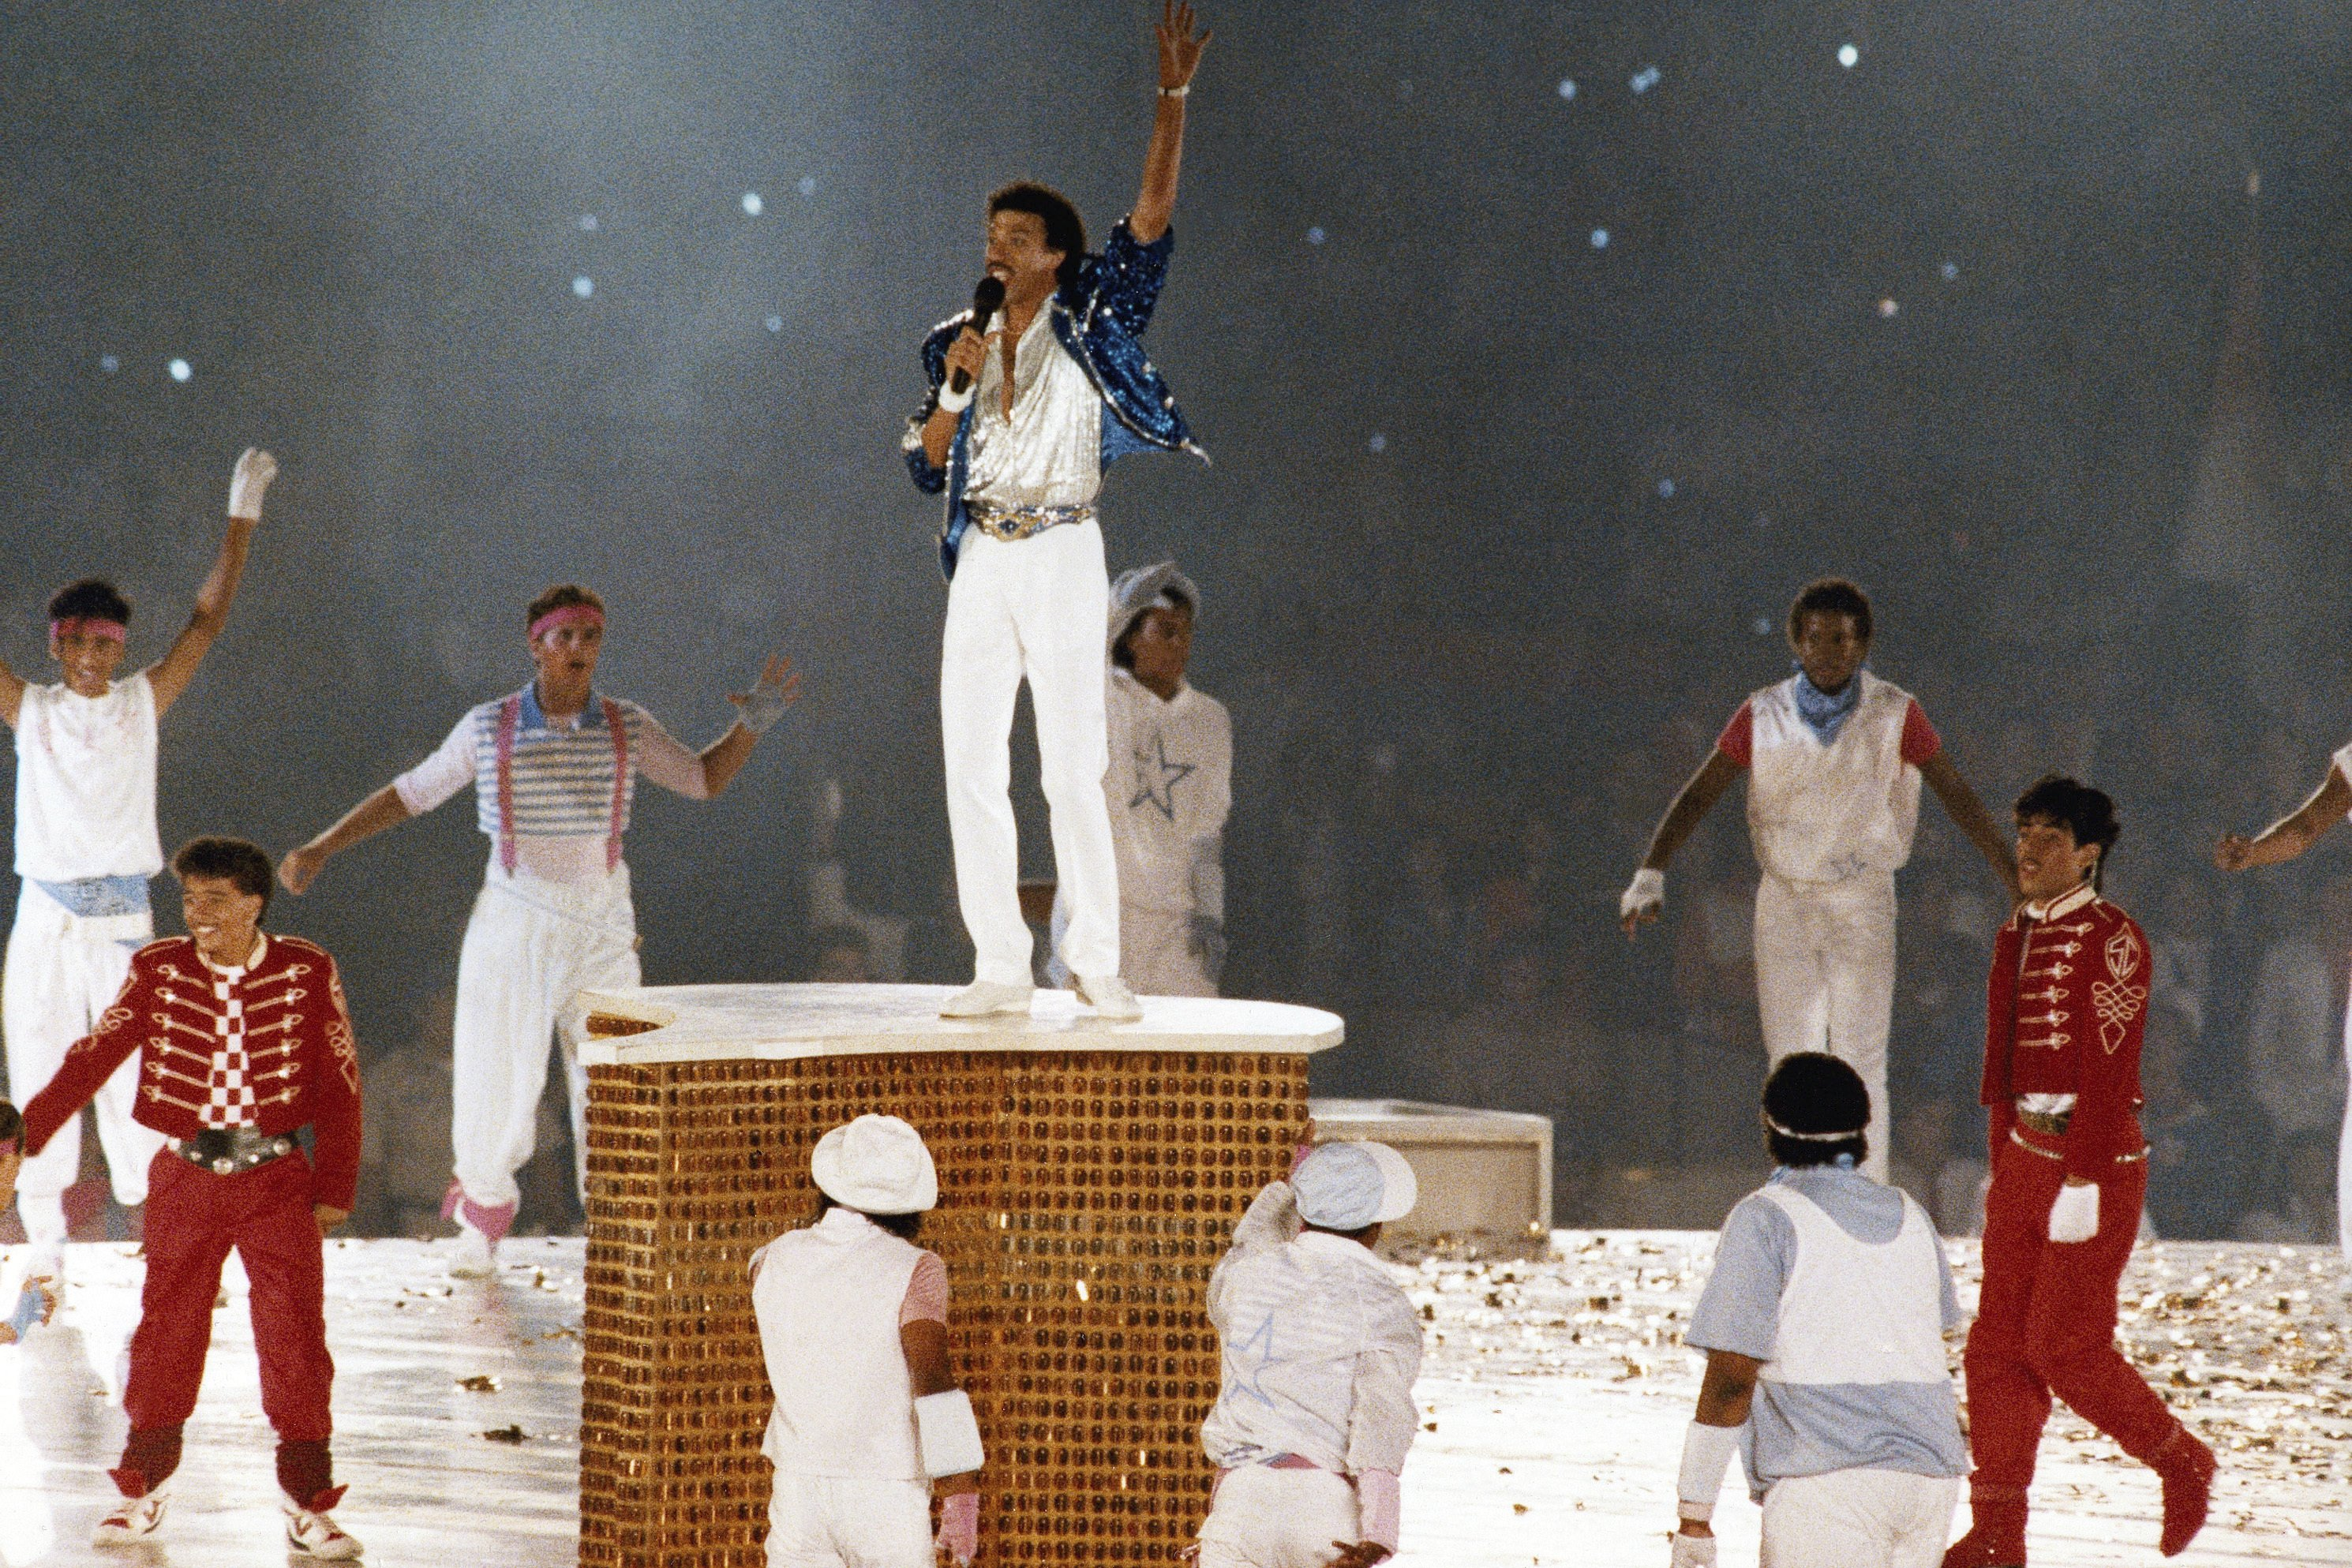 All Night Long: Lionel Richie recalls closing 1984 Olympics